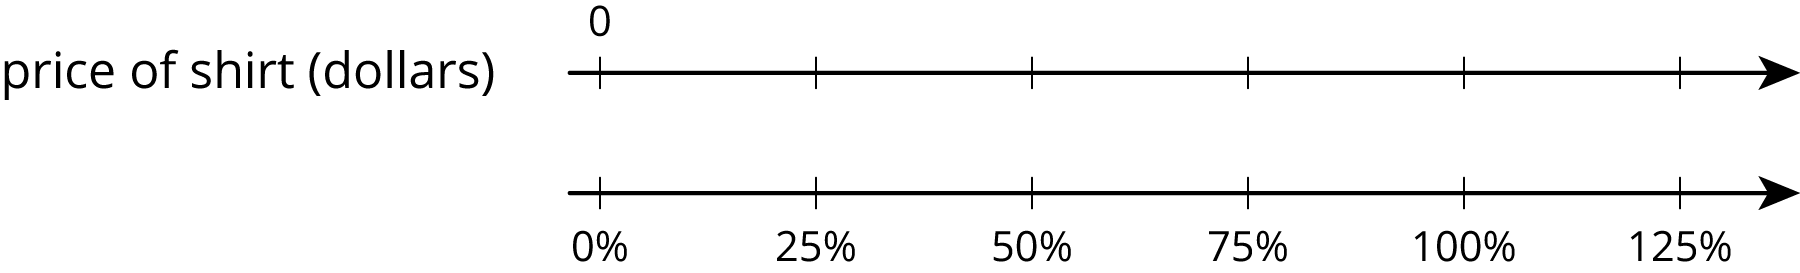 """A double number line for """"price of shirts in dollars"""" with 6 evenly spaced tick marks. On the top number line, the number zero is on the first tick mark and the remaining tick marks are not labeled. On the bottom number line, starting with the first tick mark, zero percent, 25 percent, 50 percent, 75 percent, 100 percent and 125 percent are labeled."""